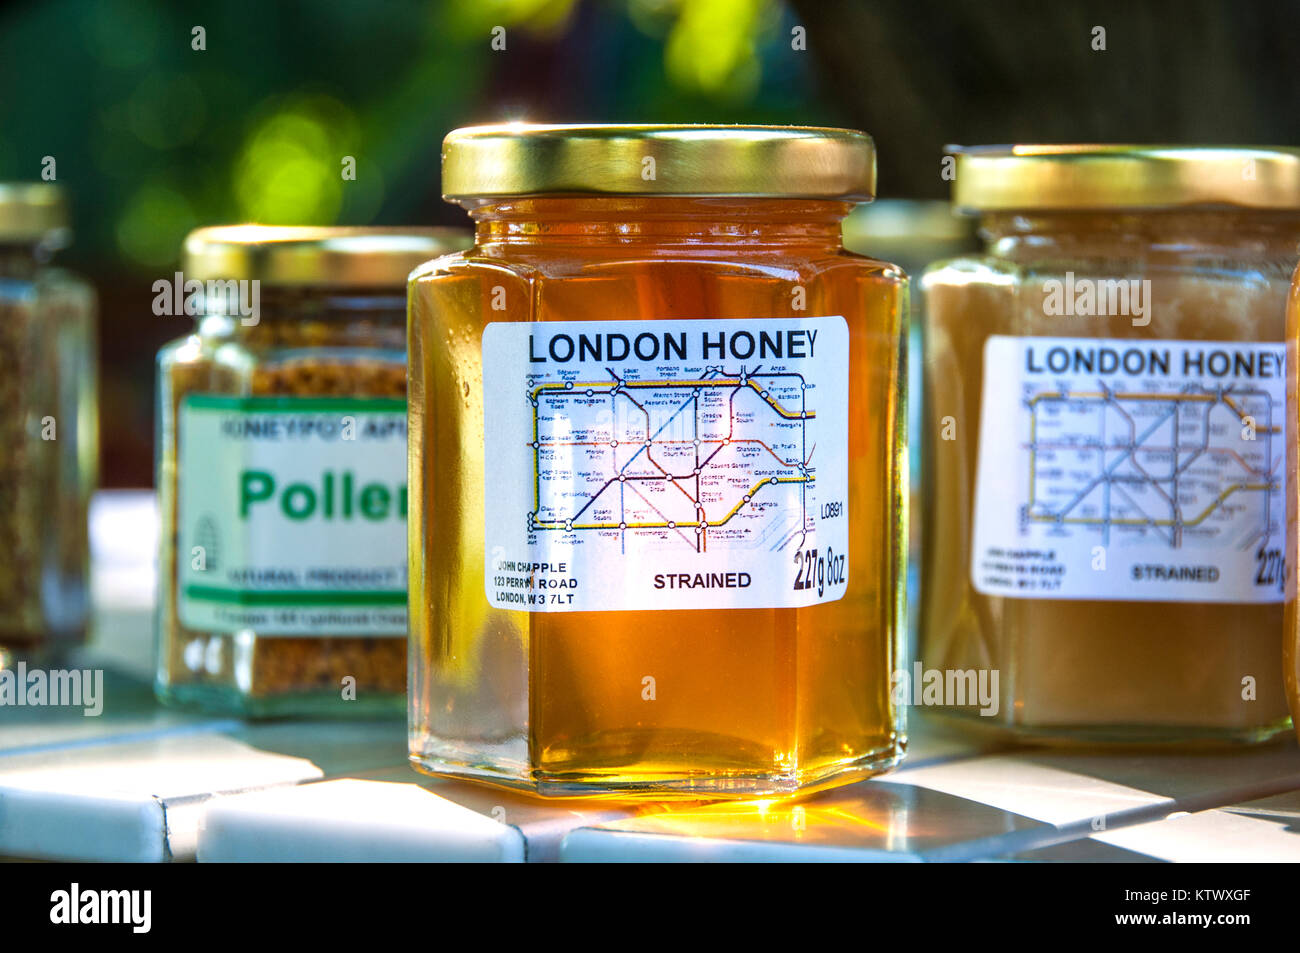 London Honey jars (strained) with Underground Tube Map Label and Pollen jars on sale at Farmers Market Stall Lambeth - Stock Image